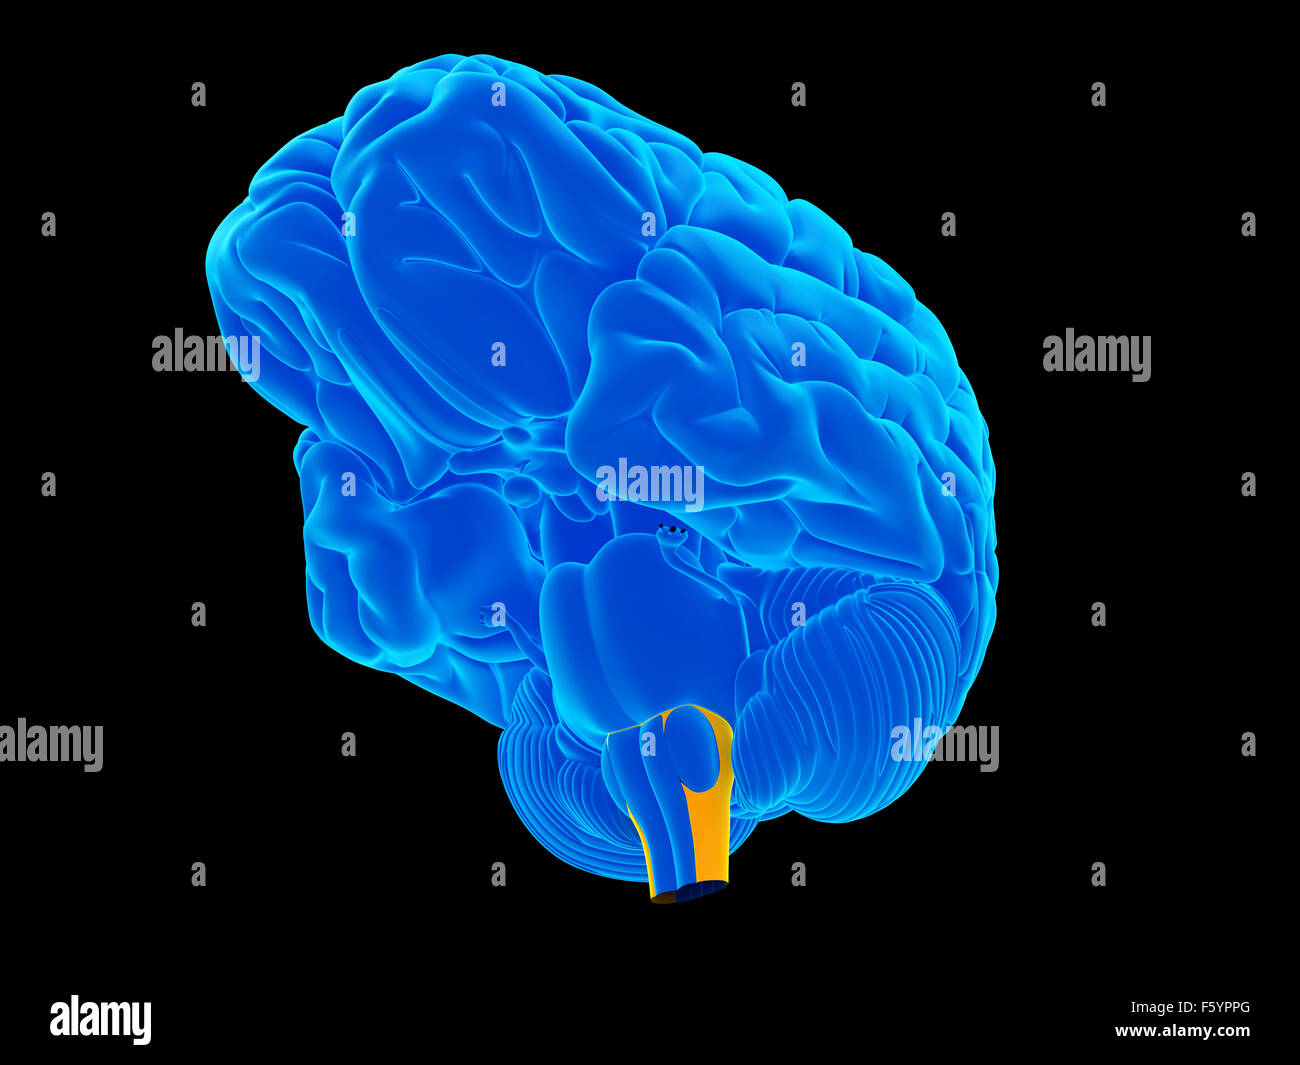 medically accurate illustration of the medulla oblongata - Stock Image